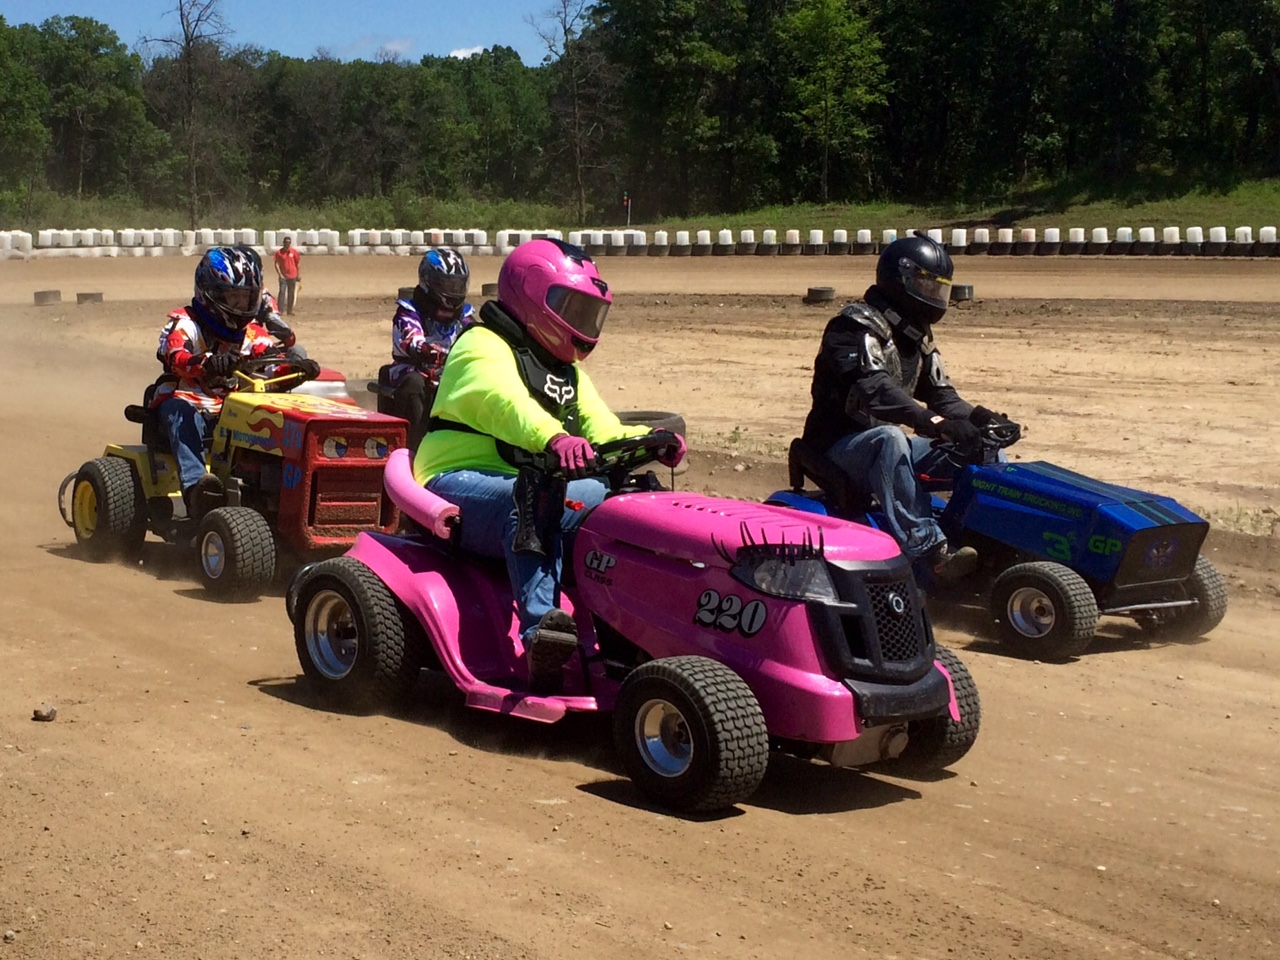 All You Wanted To Know About Lawn Mower Racing Altered Steel